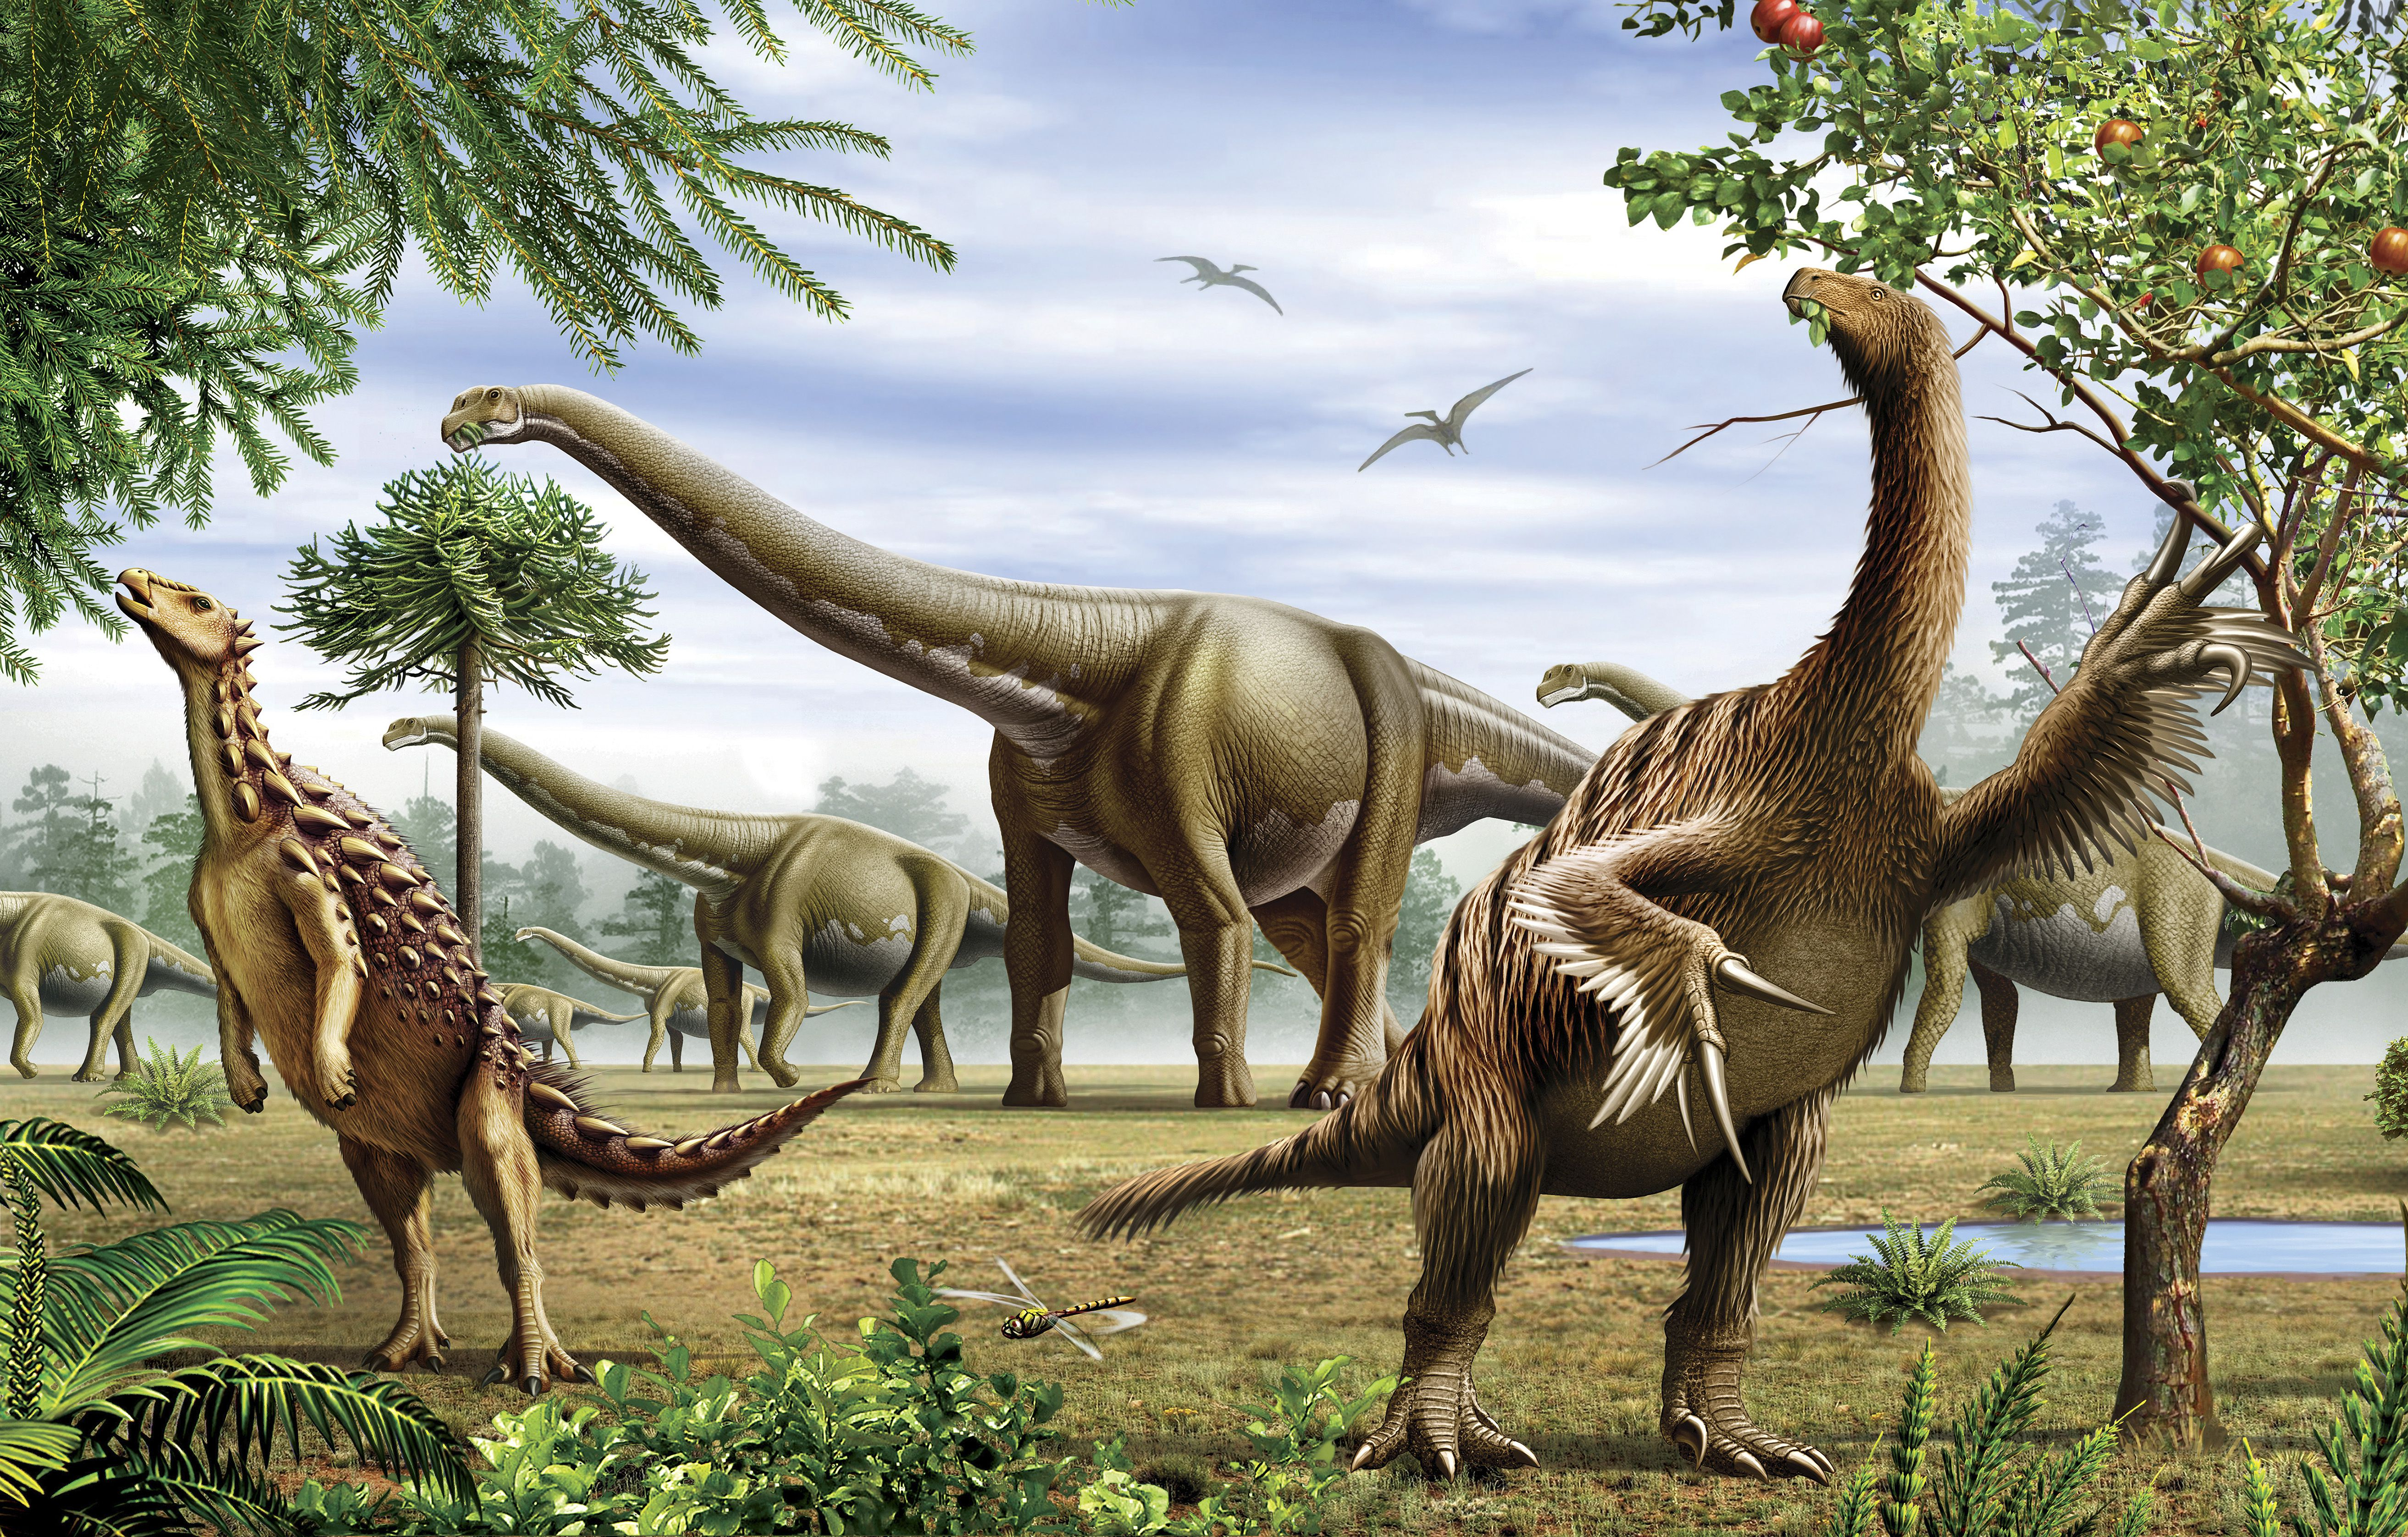 A grouo of Scelidosaurus, Nothronychus and Argentinosaurus dinosarus grazing on trees and leaves.